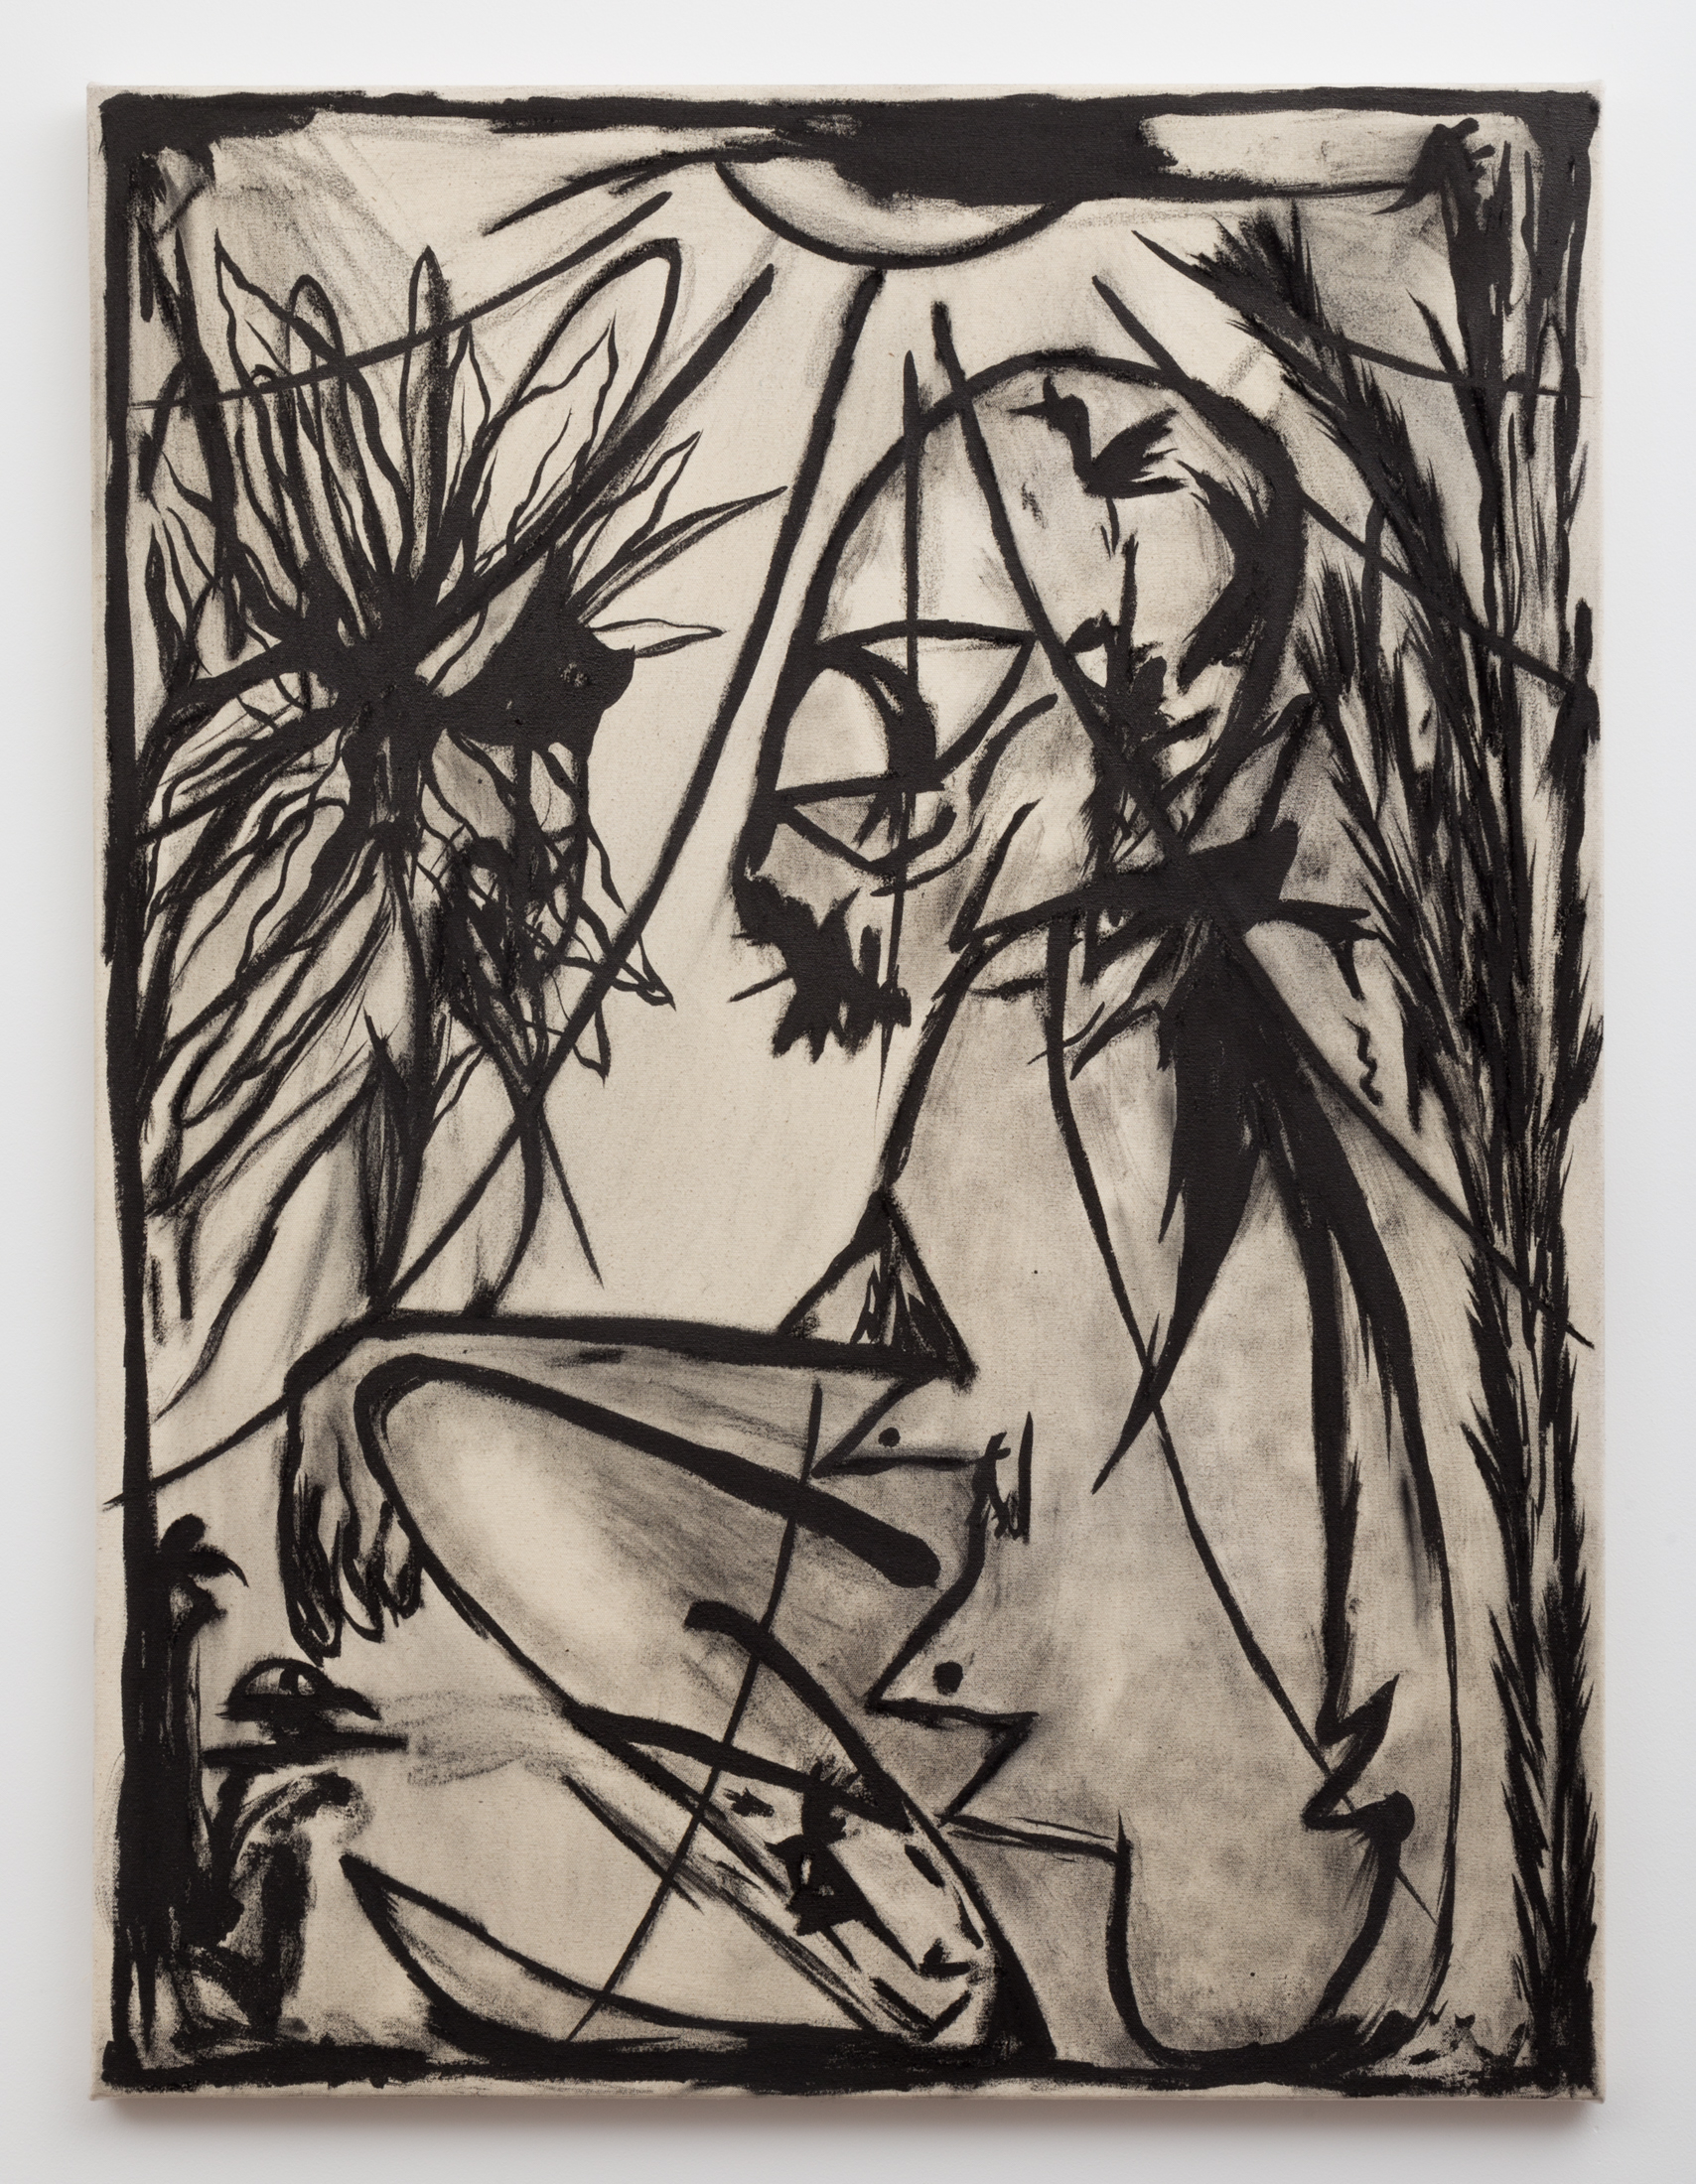 Daniel Gibson,  Don't worry, nature always wins, 2017. Graphite, charcoal, sumi ink on linen.